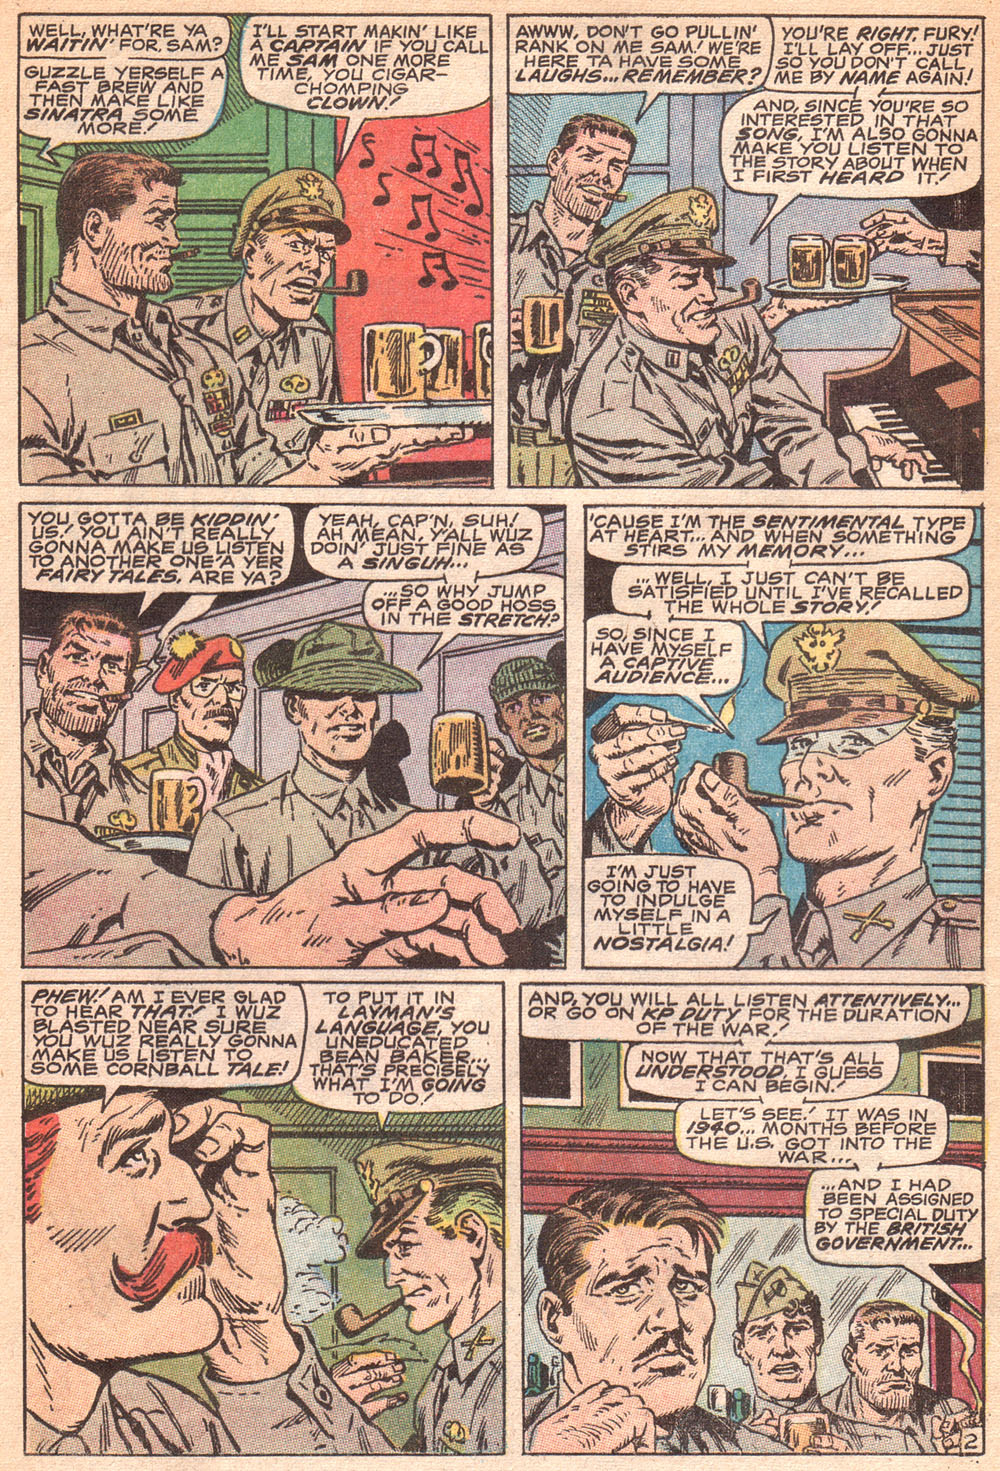 Read online Sgt. Fury comic -  Issue #72 - 4